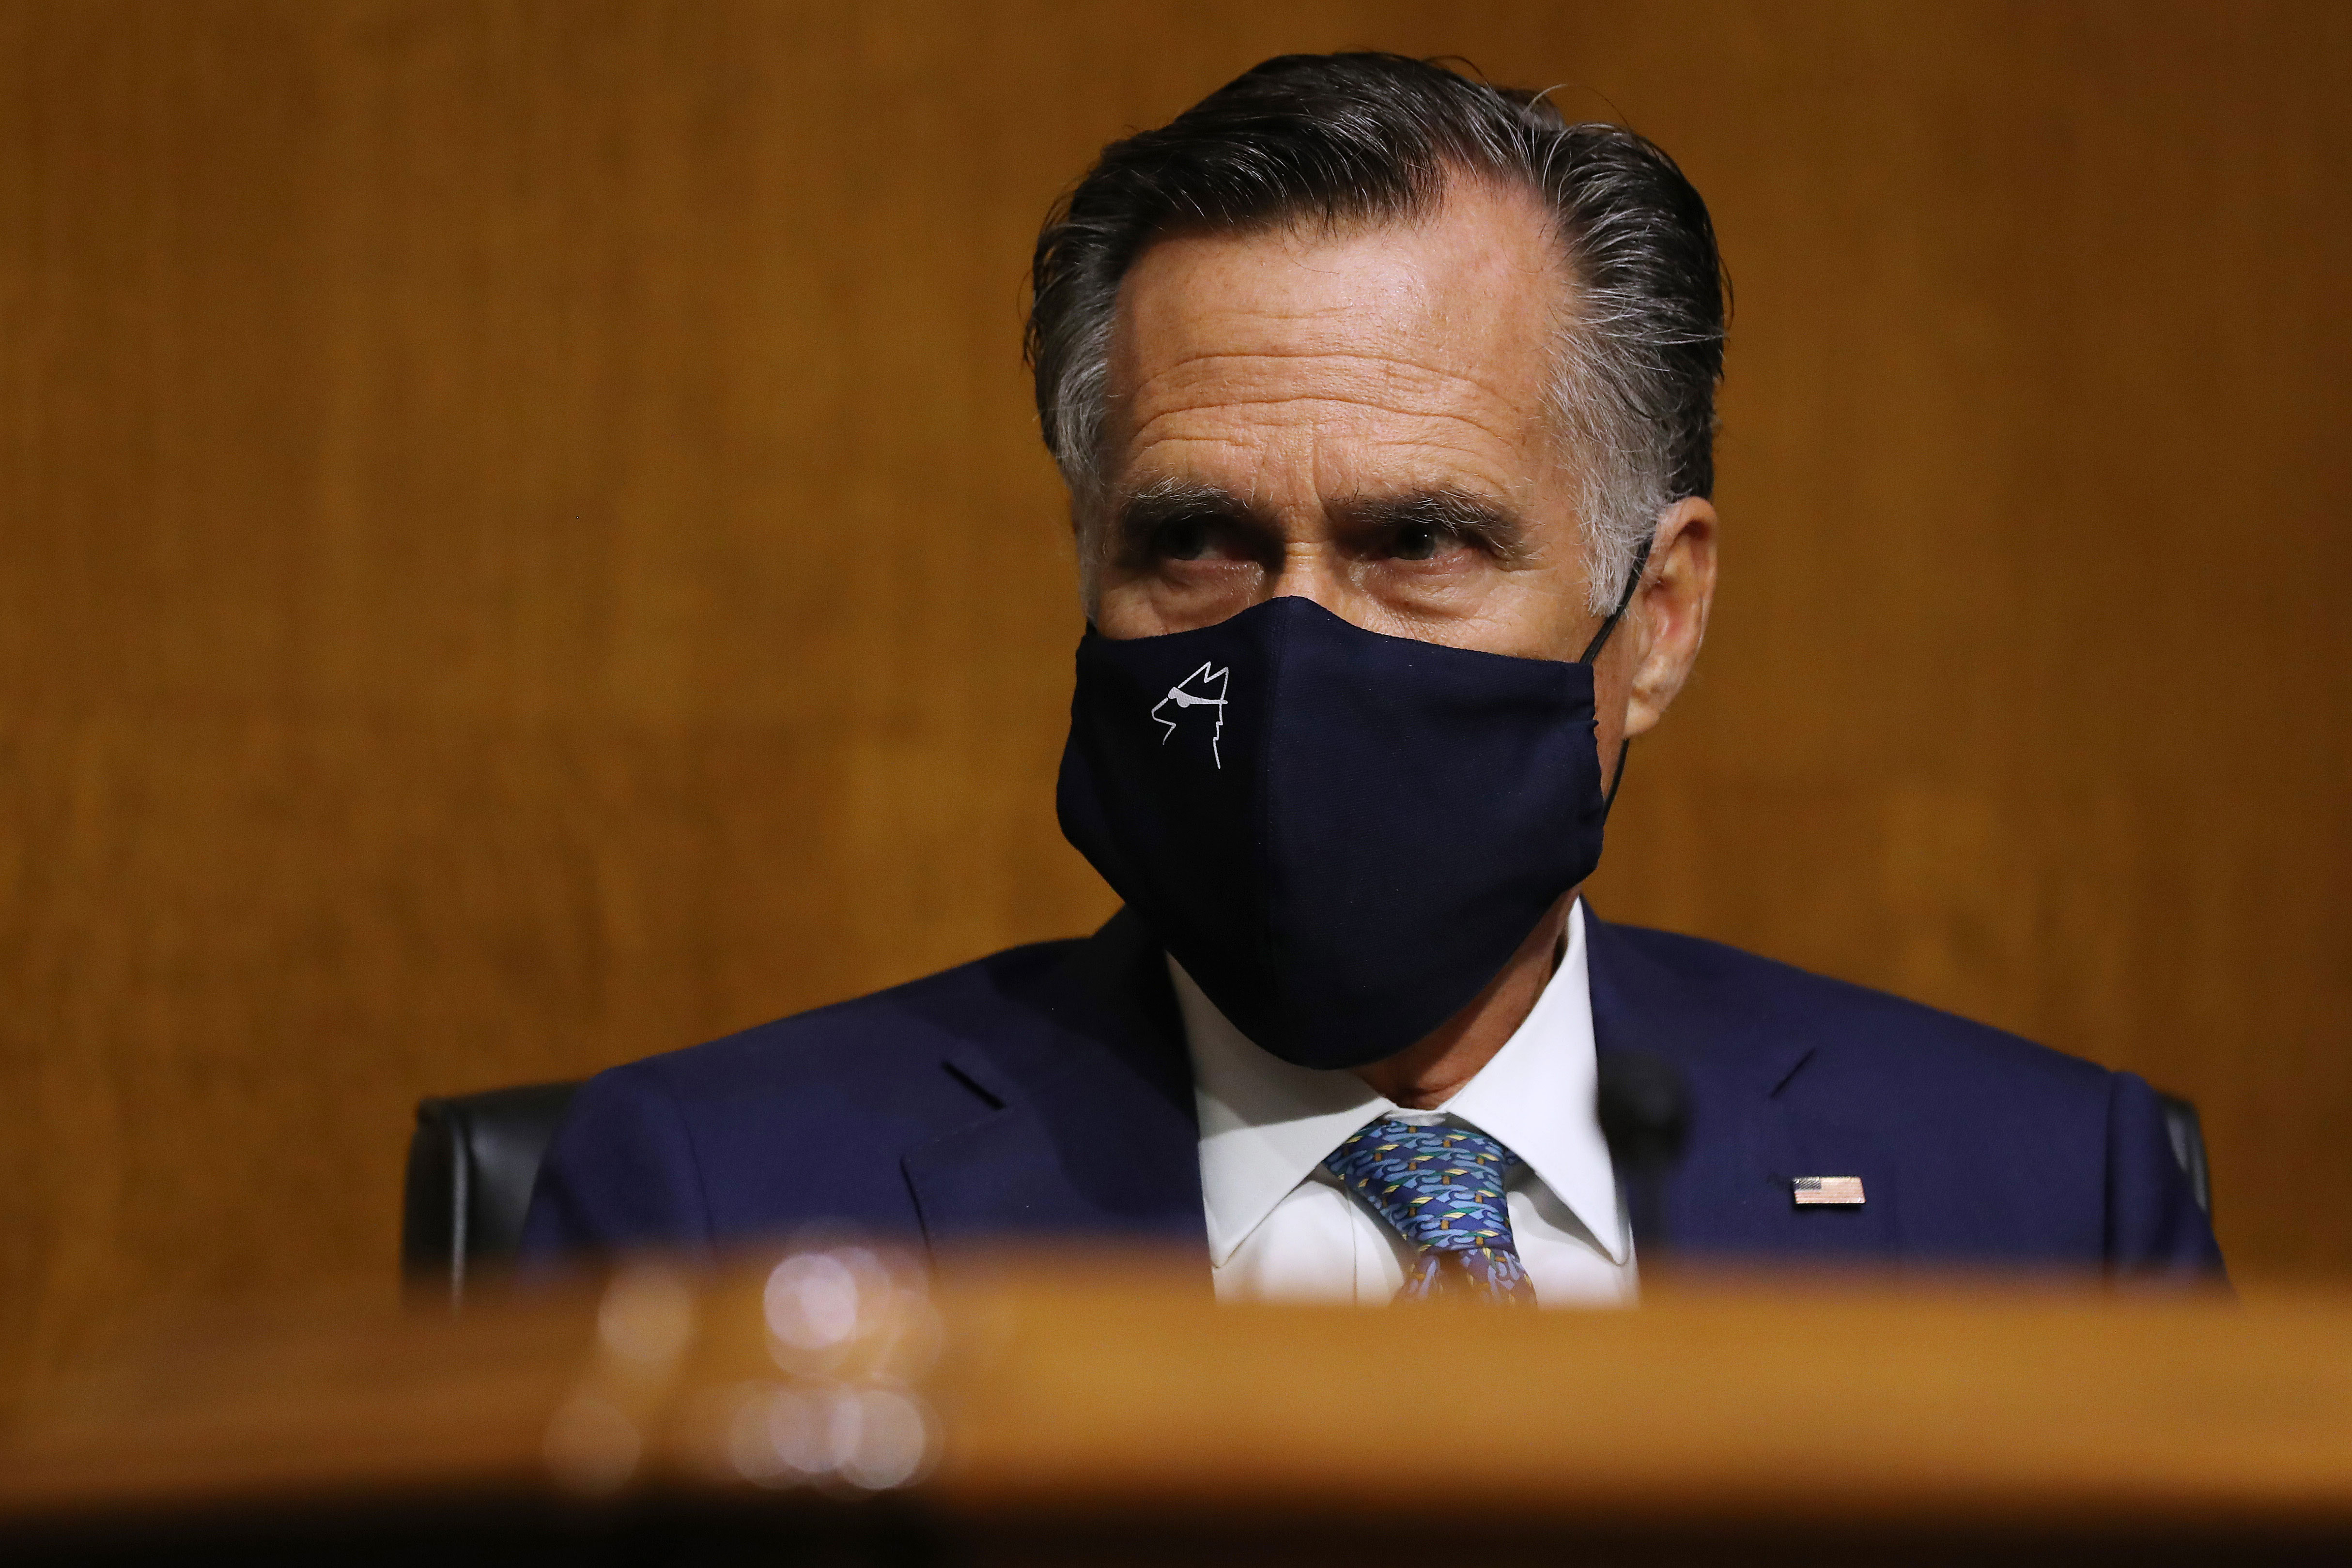 Sen. Mitt Romney attends a hearing in Washington, DC, on August 4.